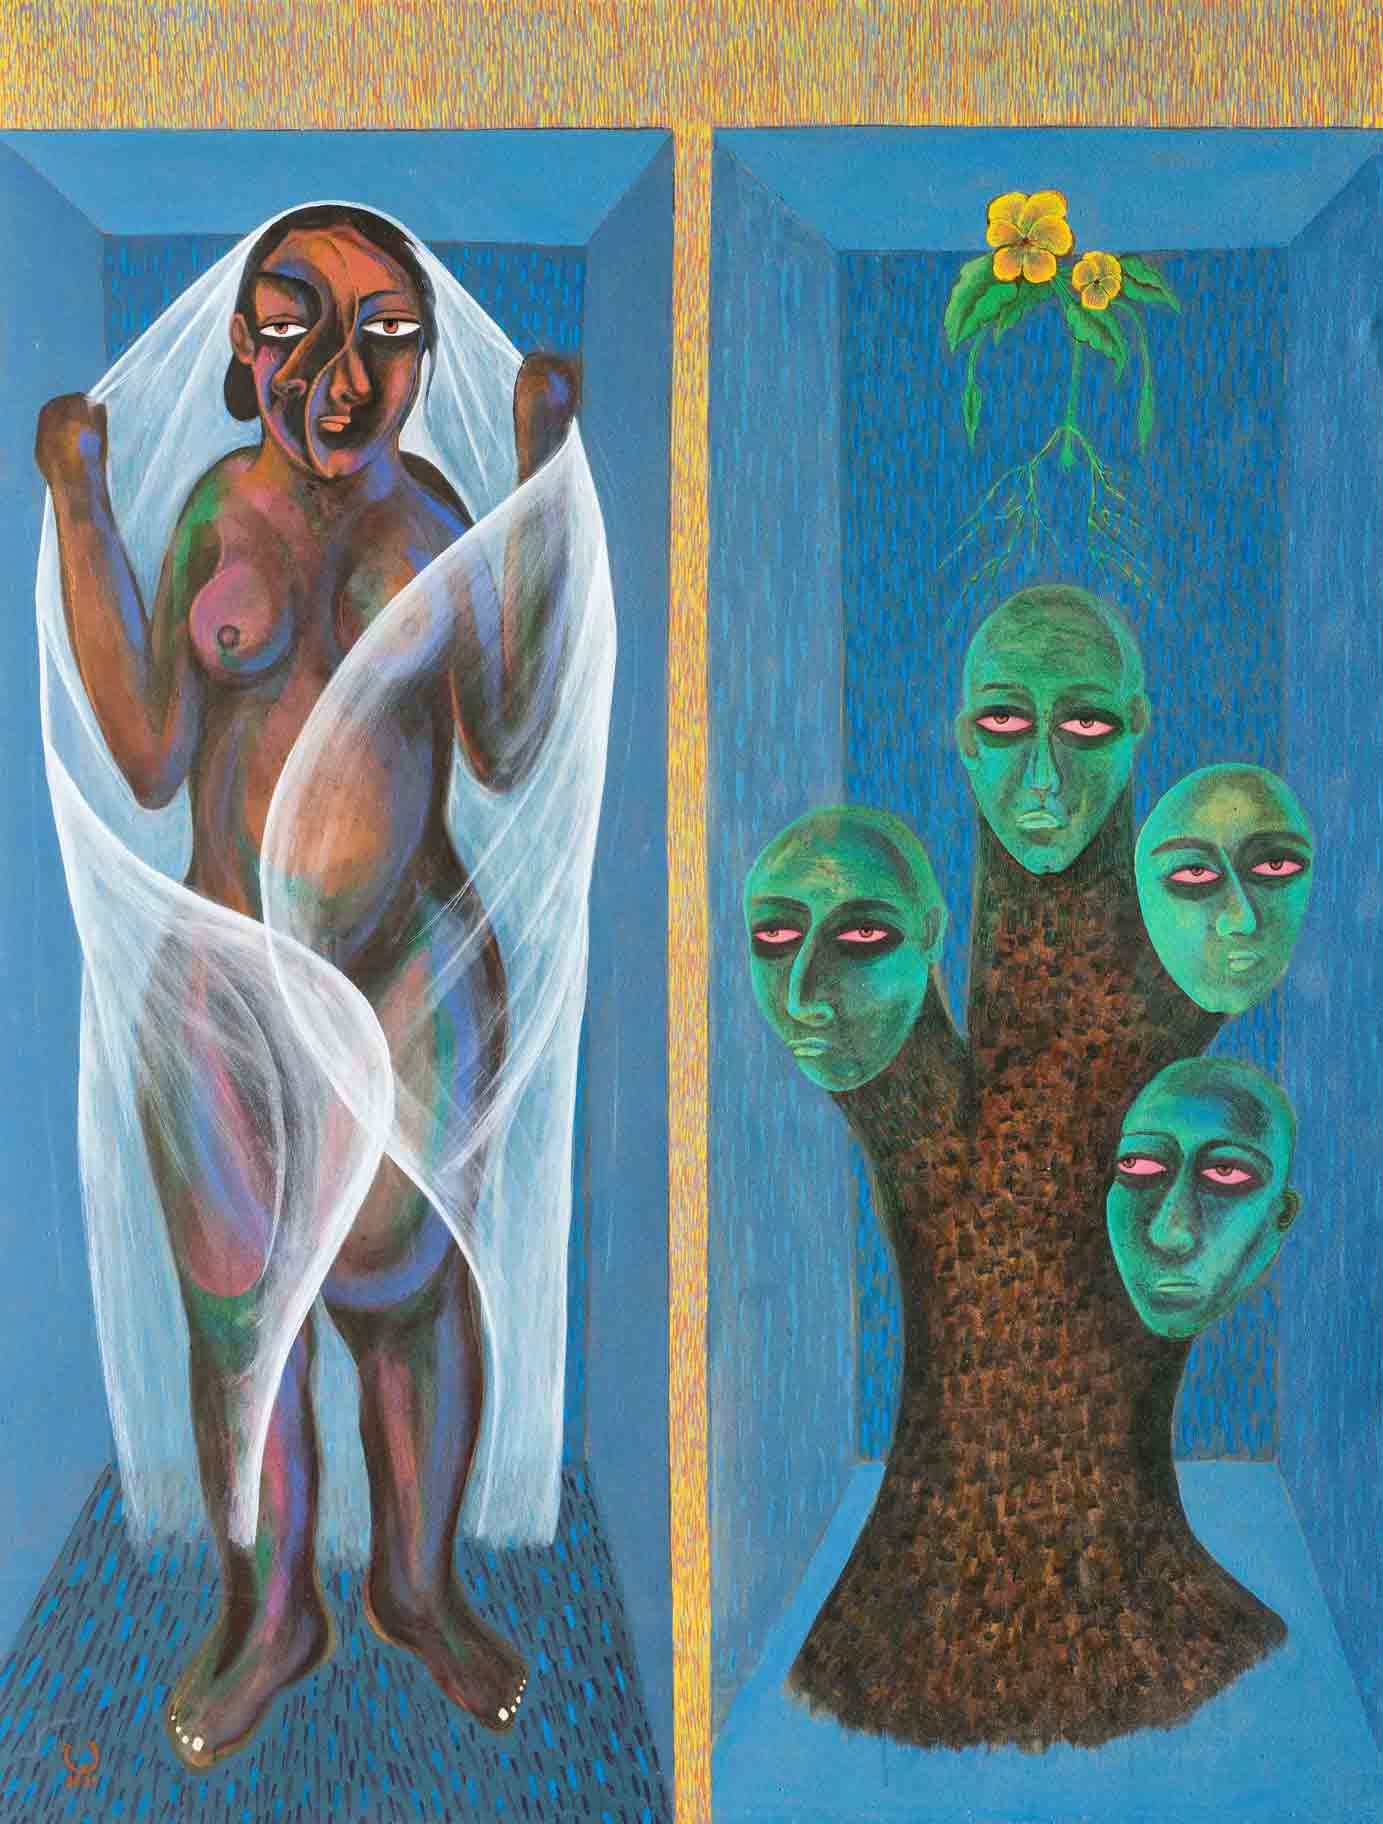 Souad Abd Elrasoul   2021  Eclectica Contemporary   Art Gallery   Cape Town  